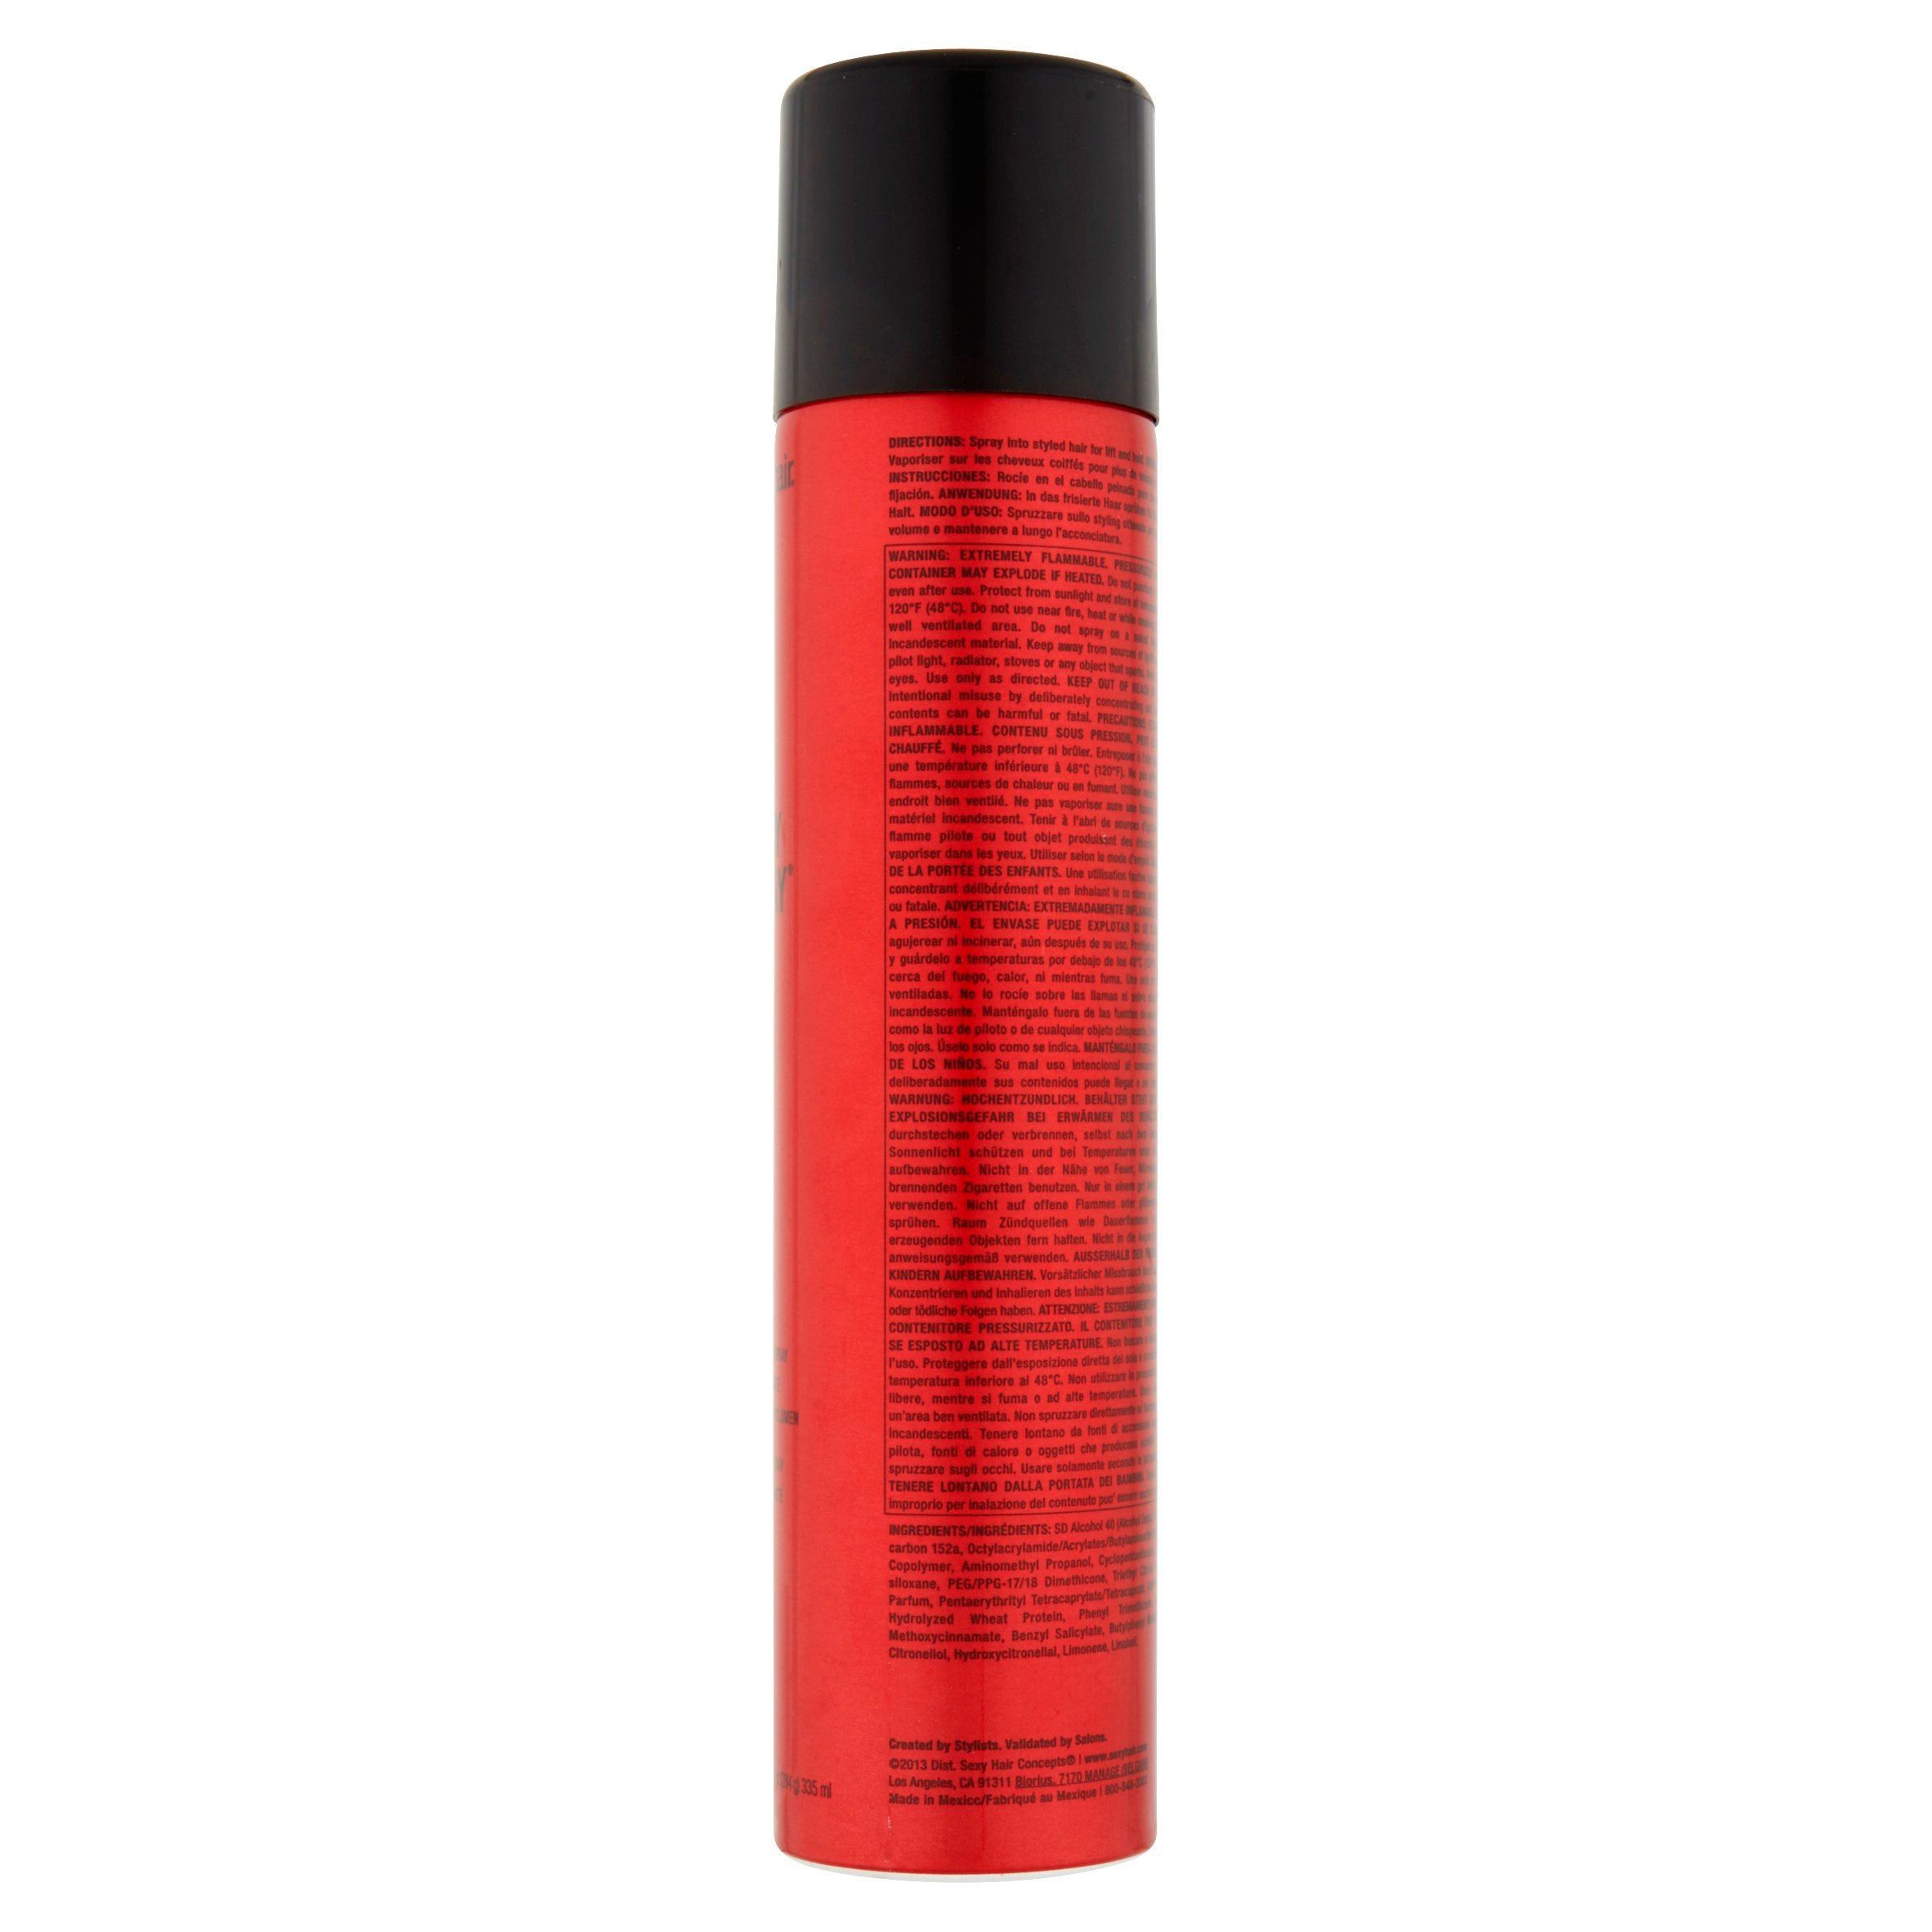 Big Sexy Hair Spray & Play Volumizing Hairspray, 10 oz - Walmart.com